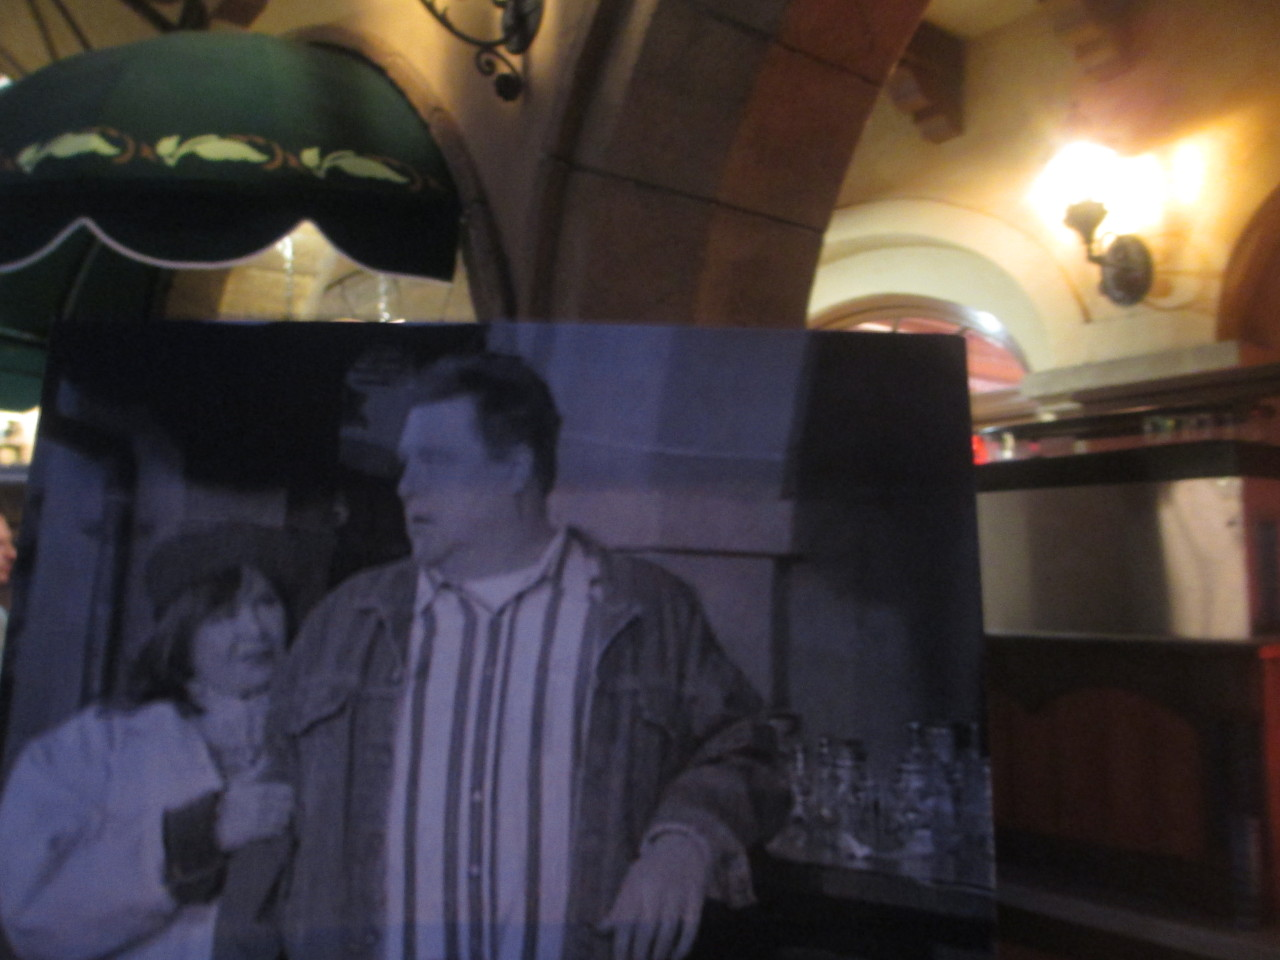 Roseanne: Disney World War II (1996) Image: 262 Posted by: @Moloknee  A limited number (10) of signed and numbered prints are now available for purchase by clicking the button below the images or emailing me here.